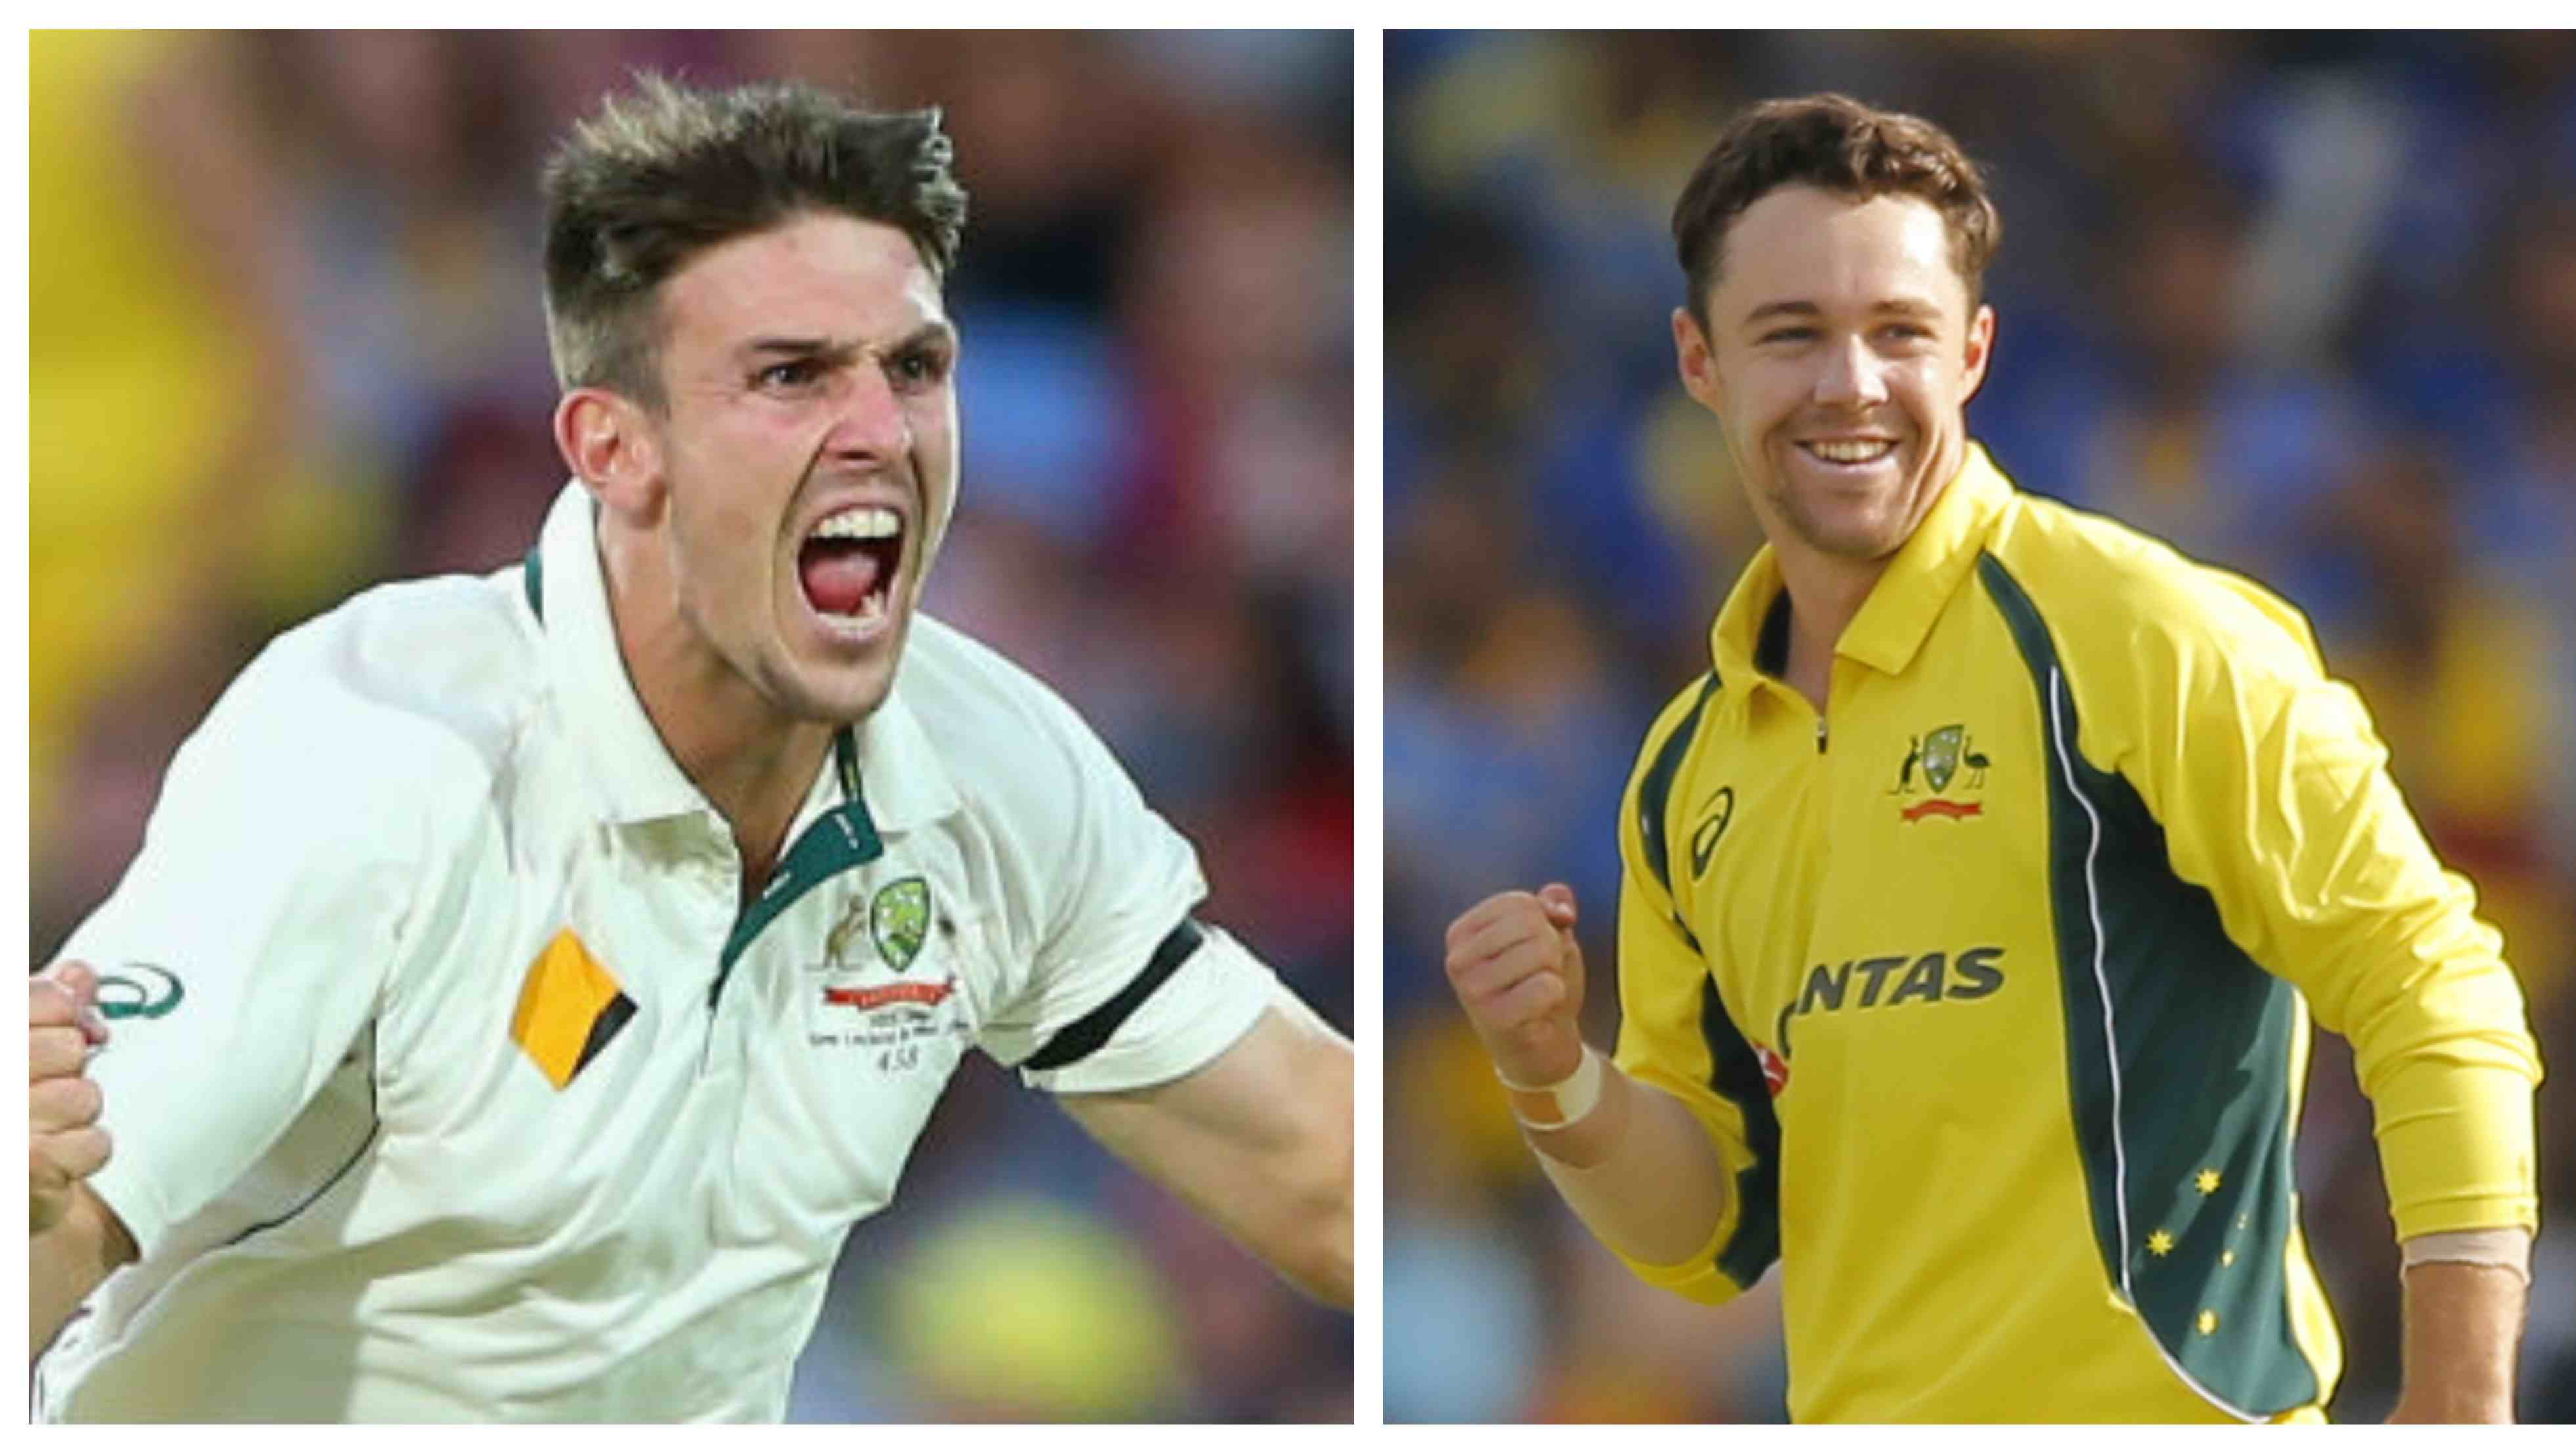 Mitchell Marsh, Travis Head to lead Australia 'A' Test and ODI squads in India tour